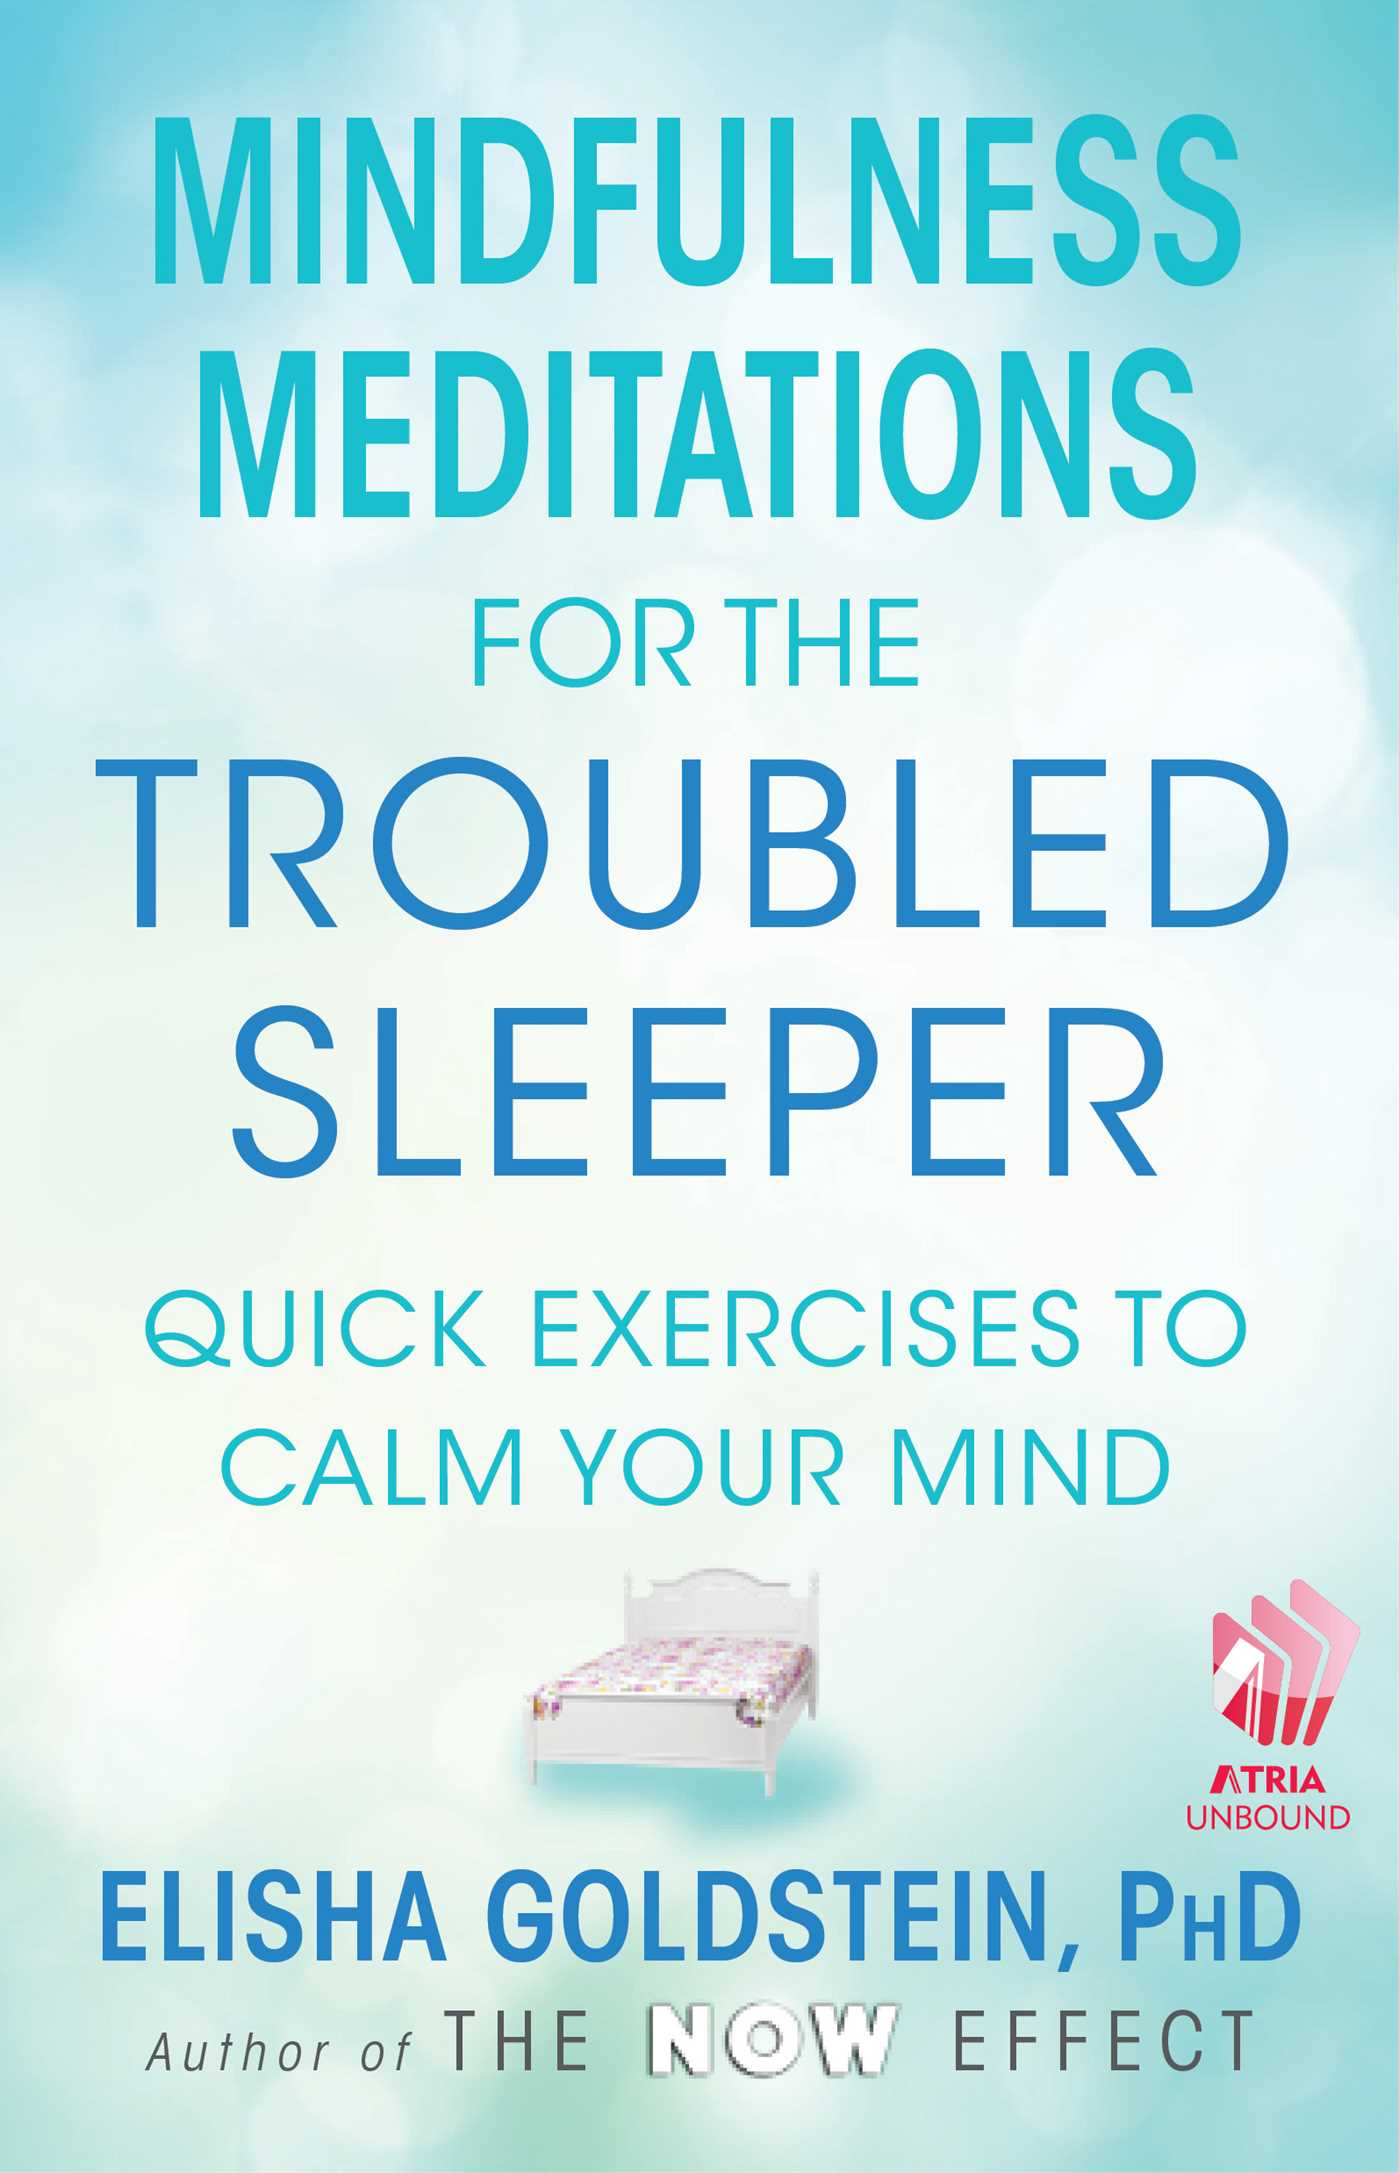 Mindfulness meditations for the troubled sleeper 9781451698121 hr